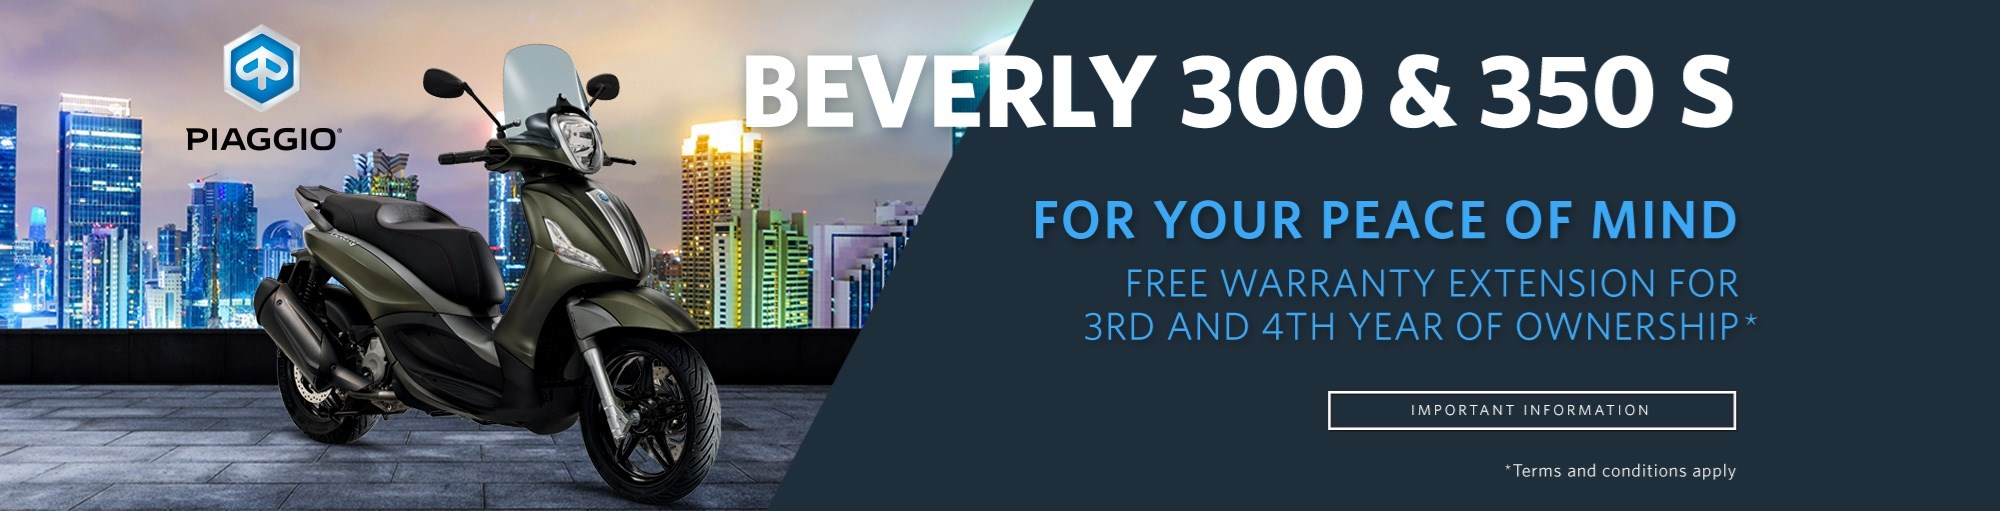 Beverly 300 & 350 S Extended Warranty Offer